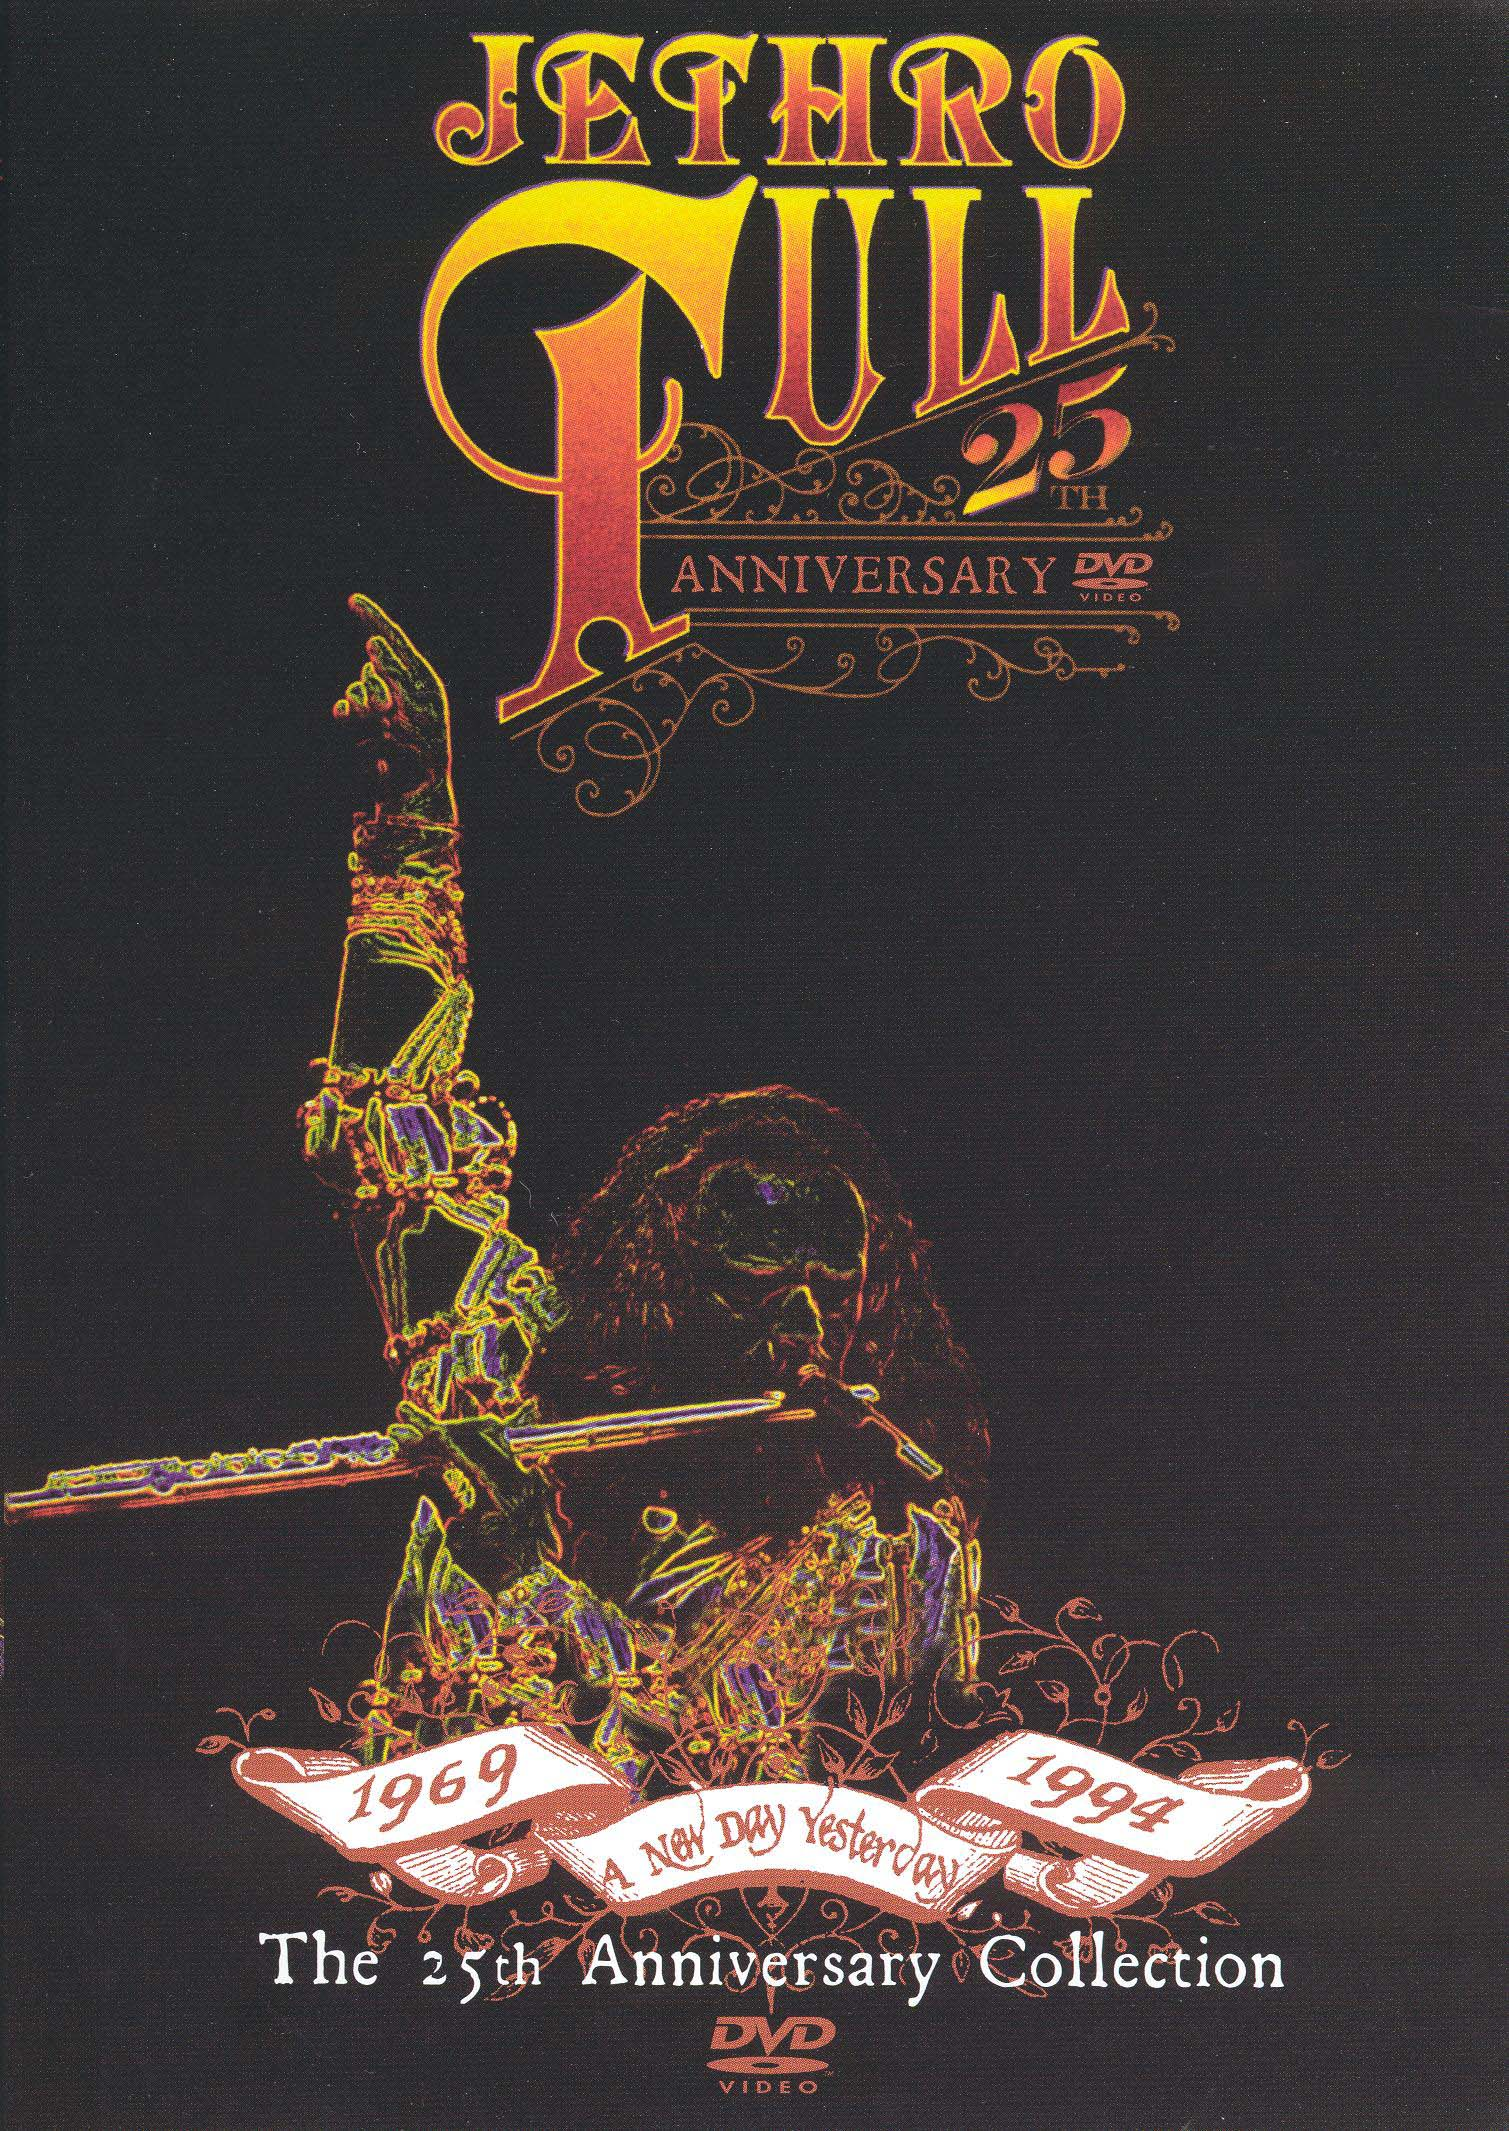 Jethro Tull: A New Day Yesterday - 25th Anniversary Collection, 1969-1994